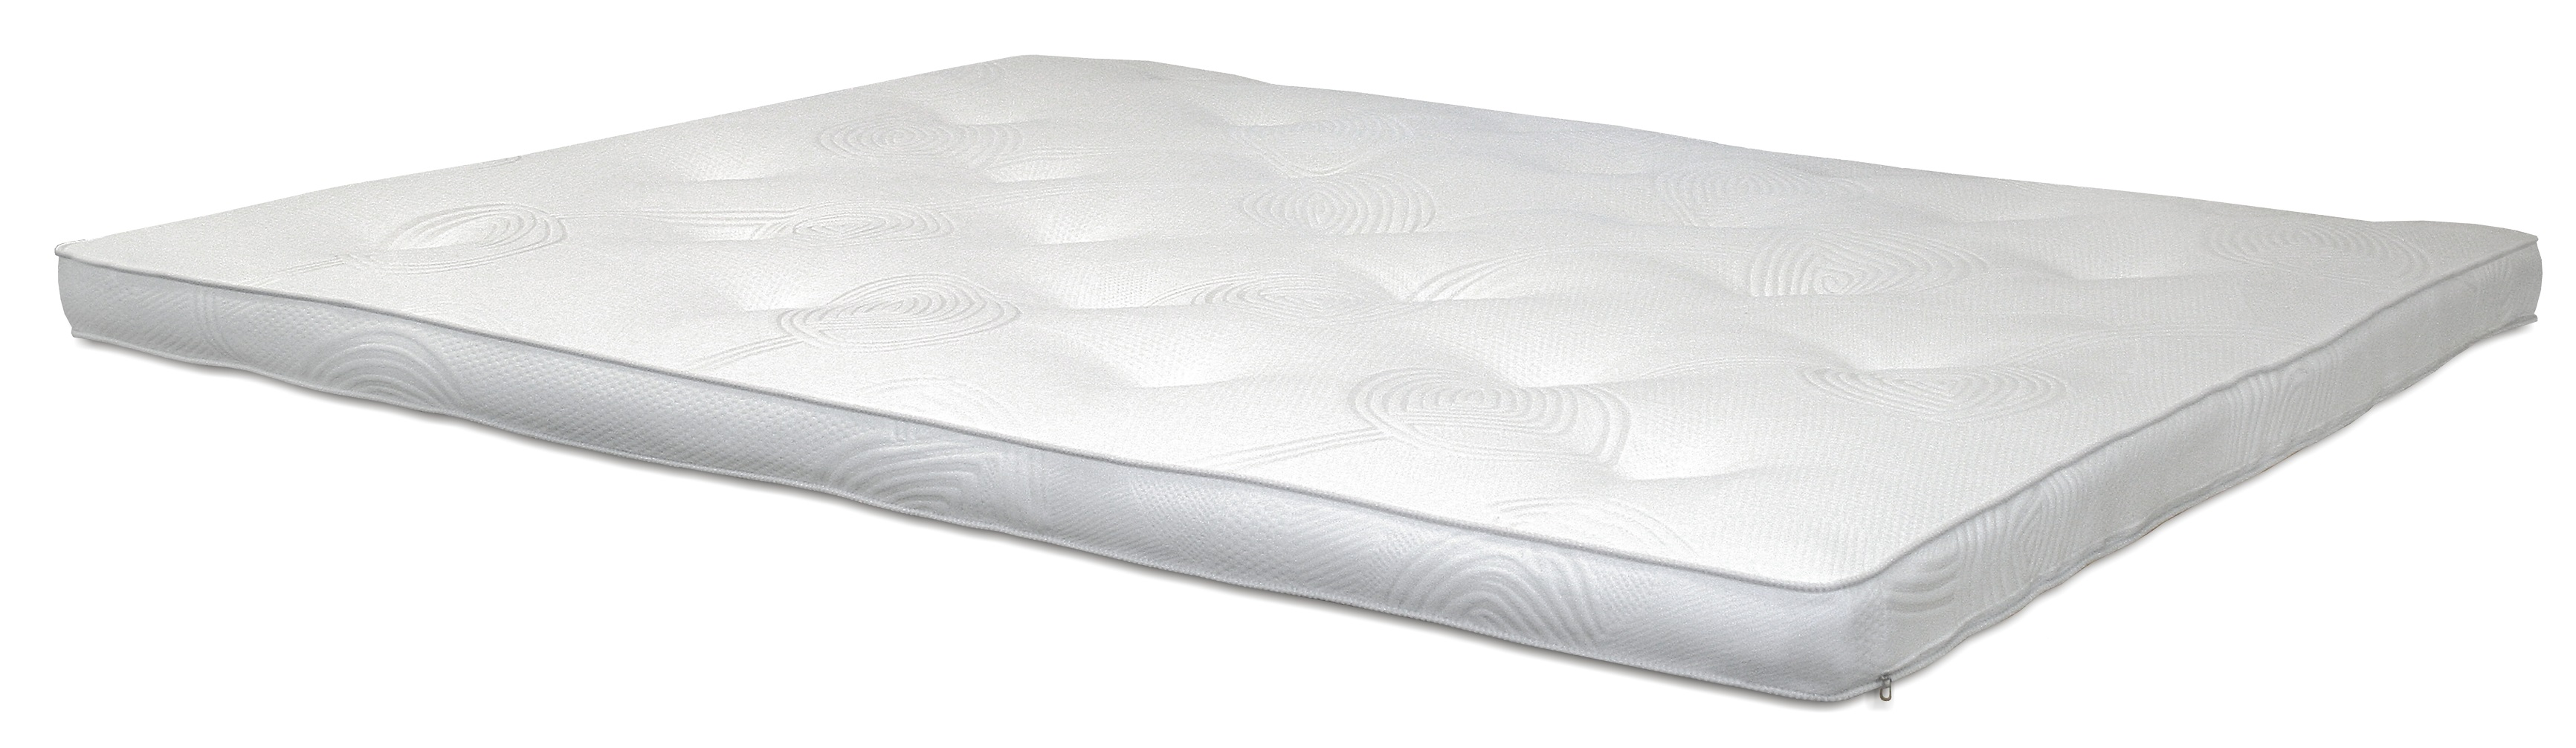 GRAND TOP mattress WHITE 1 7